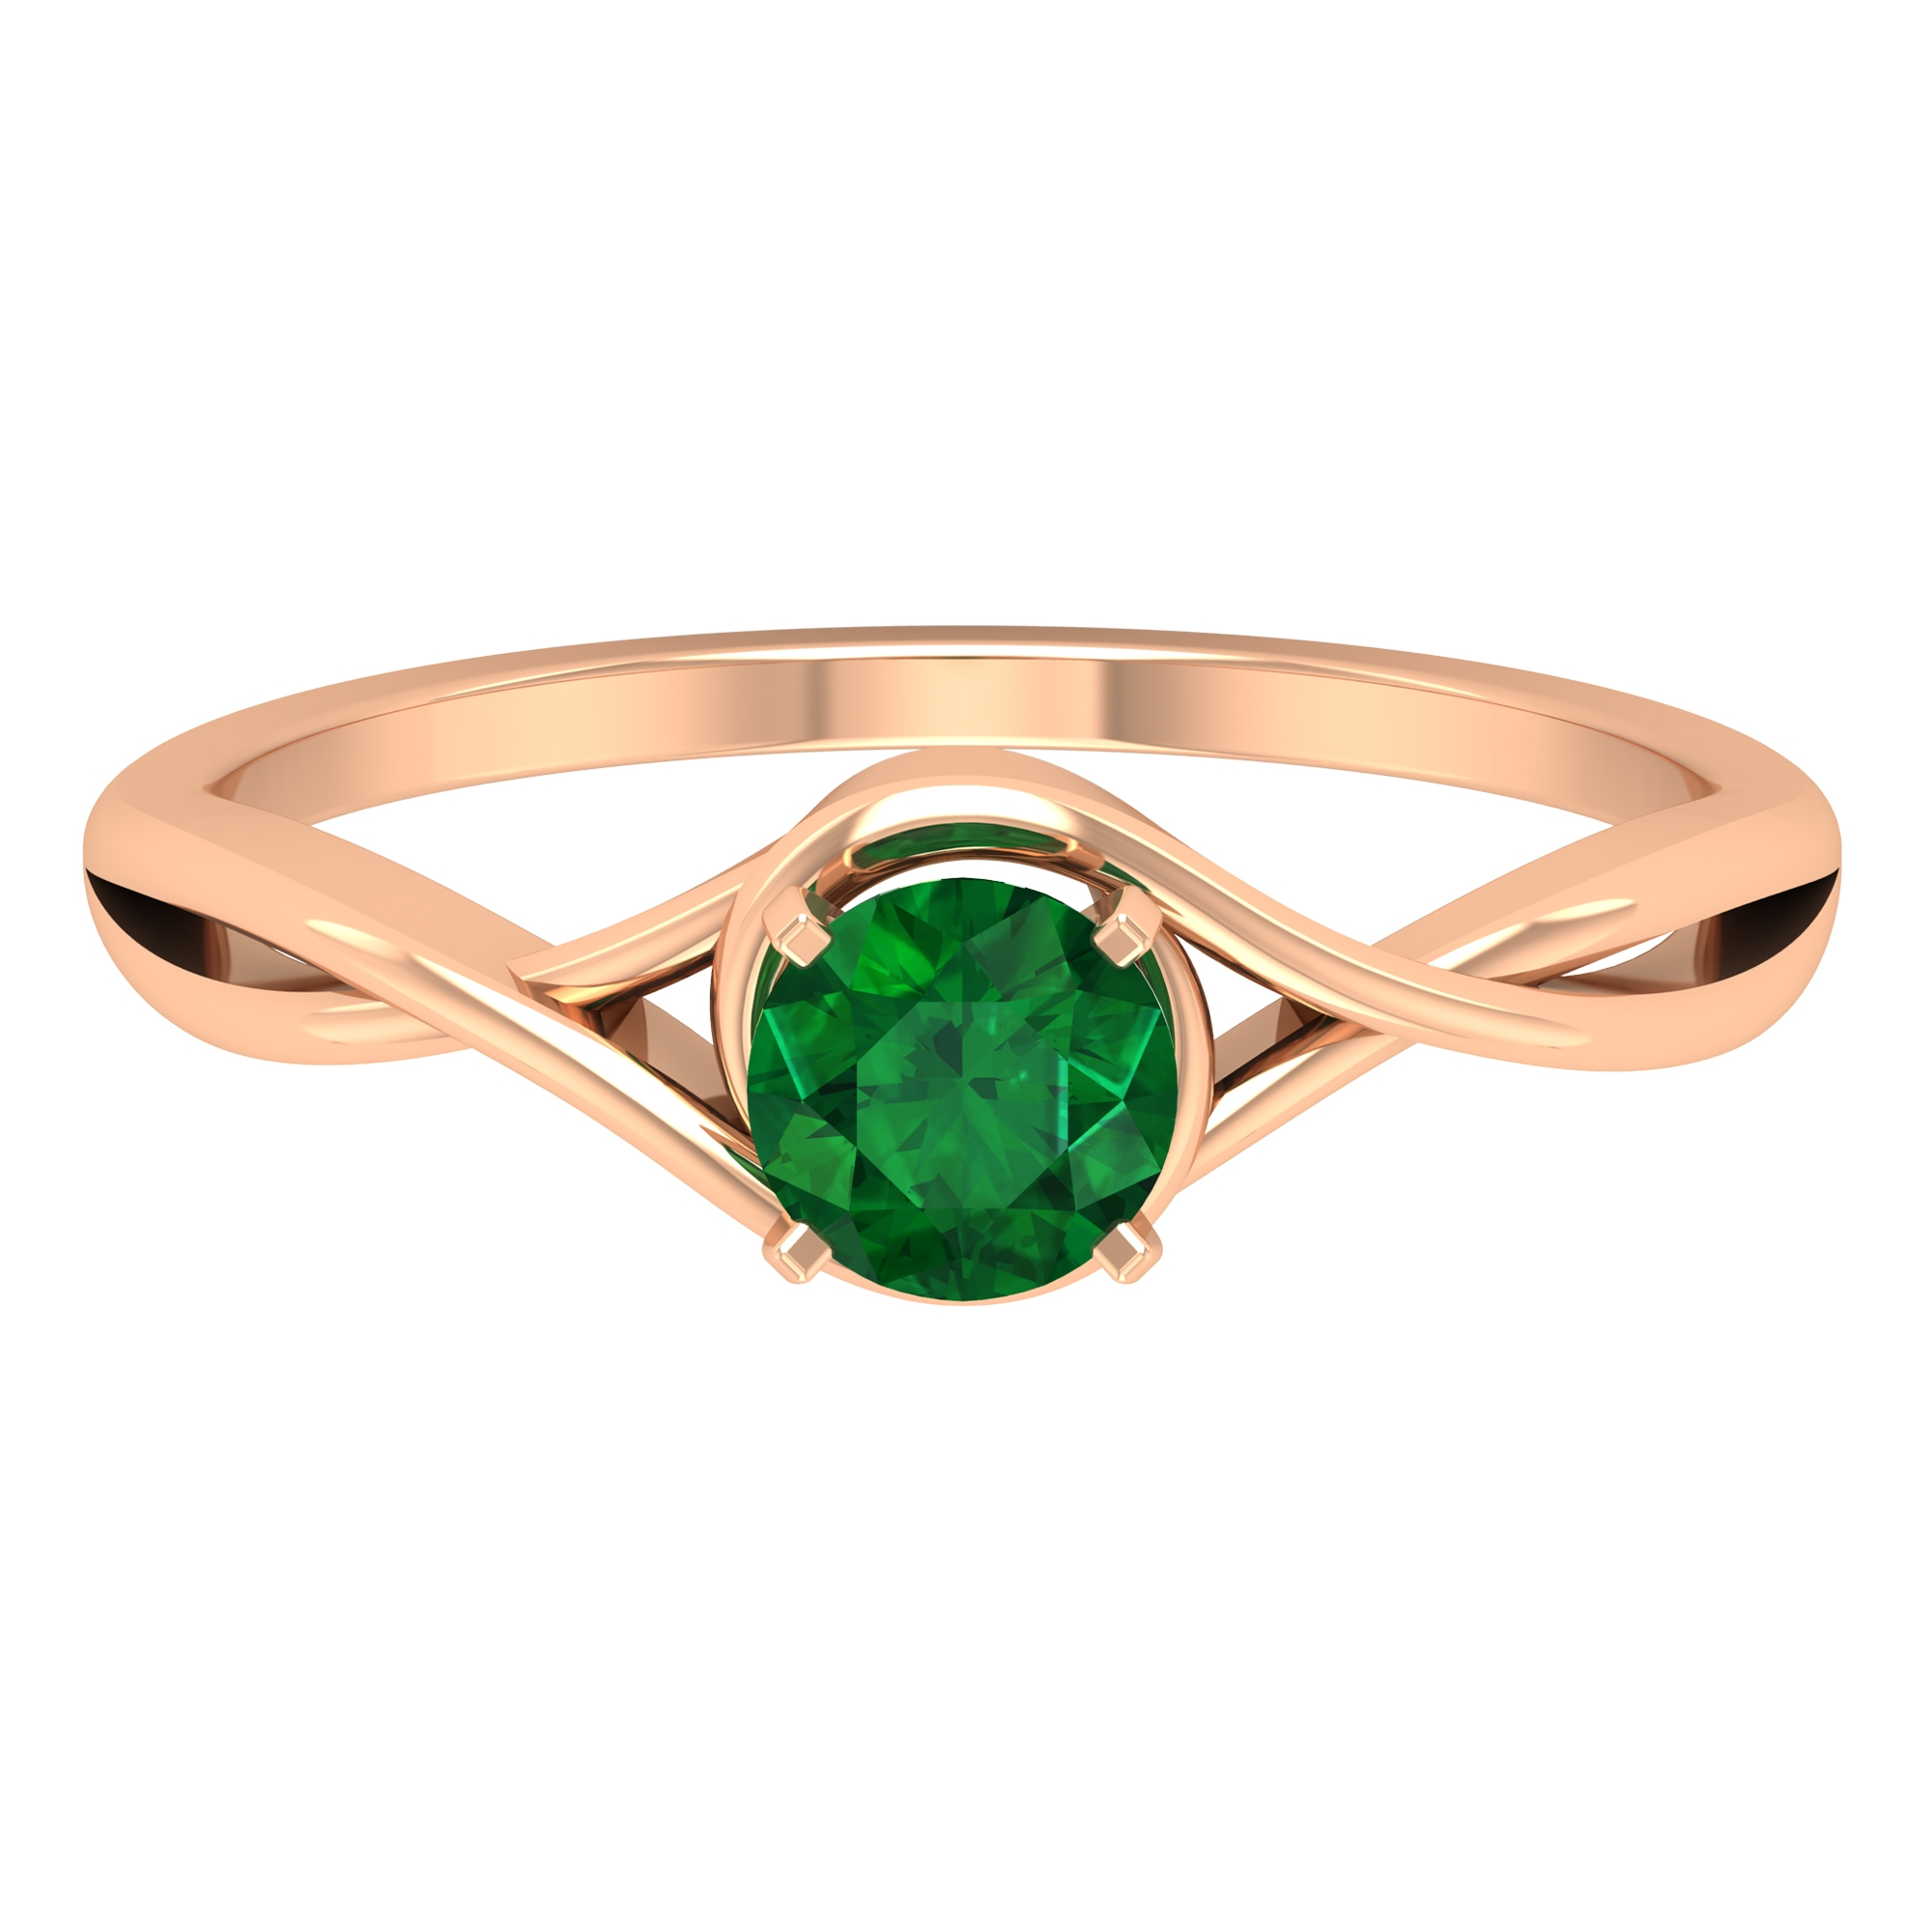 5 MM Round Cut Solitaire Emerald Ring in Square Prong Setting with Crossover Shank